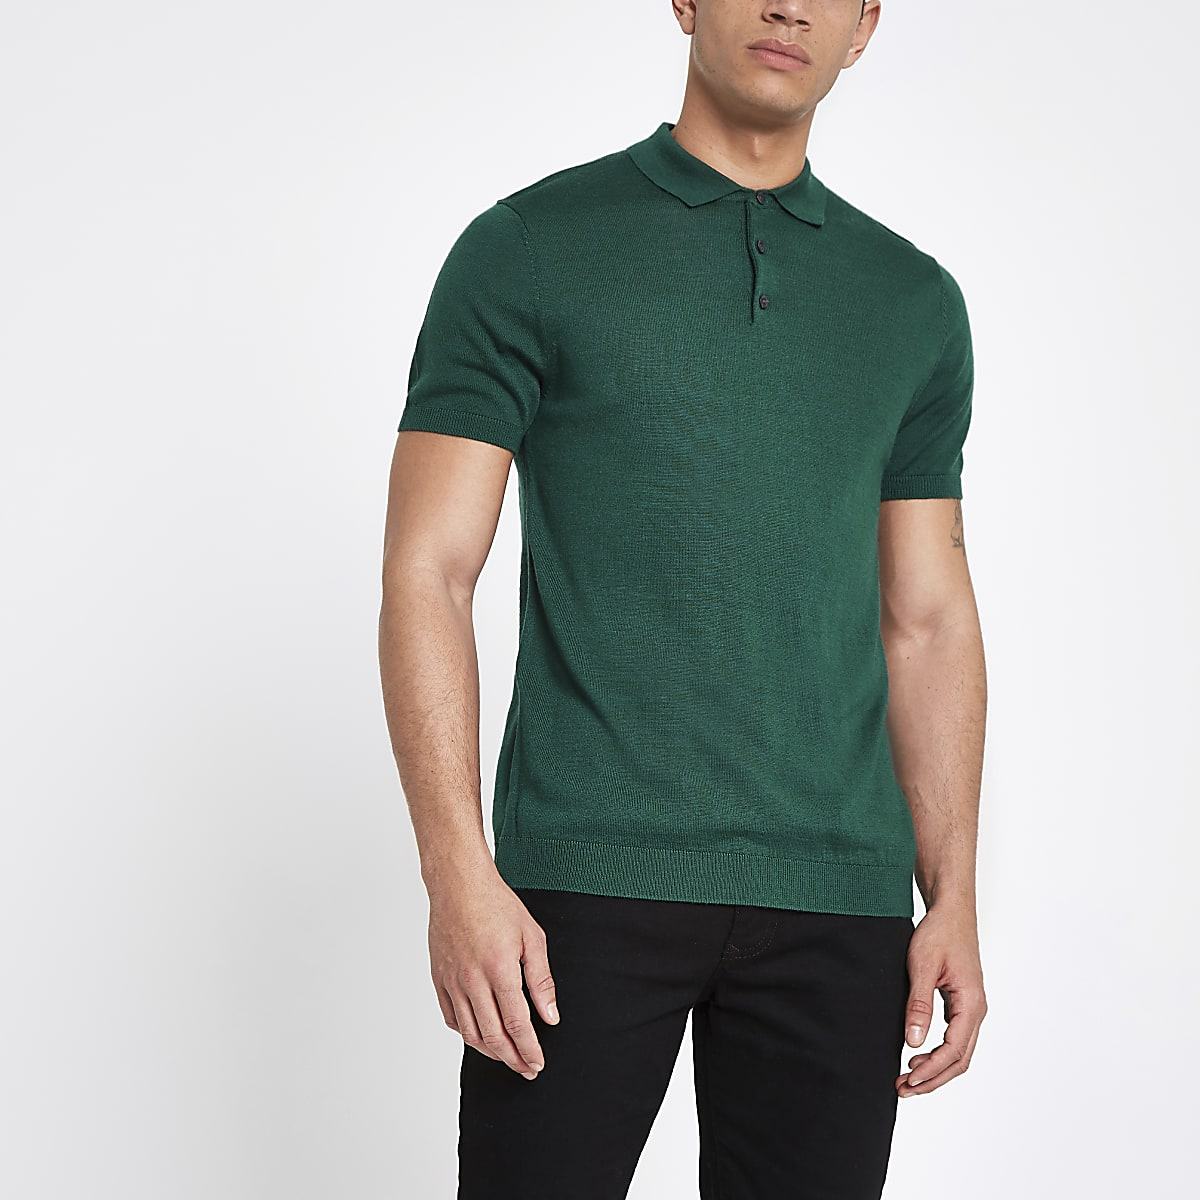 Selected Homme – Grünes Polohemd